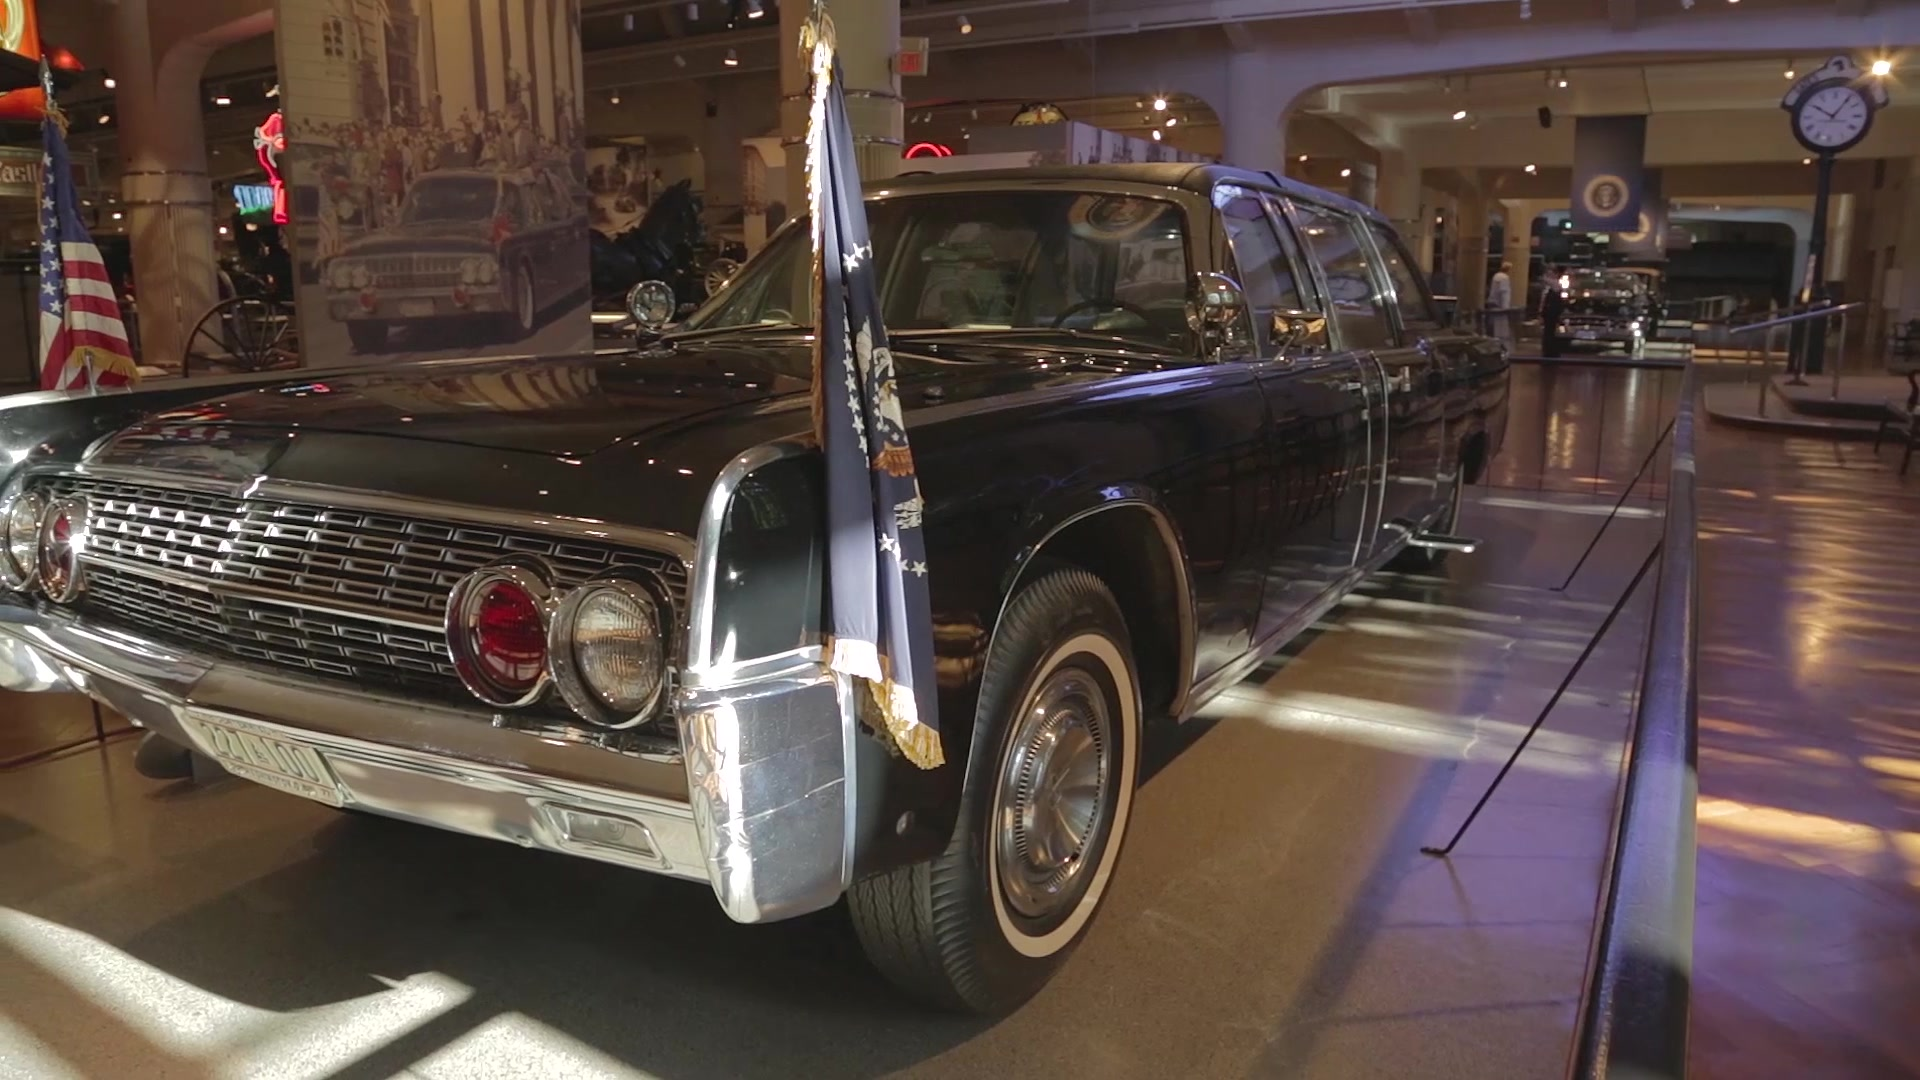 50 Years After Jfk Assassination His Limo Tells A Story Autoblog Murdered Out 1955 Cadillac